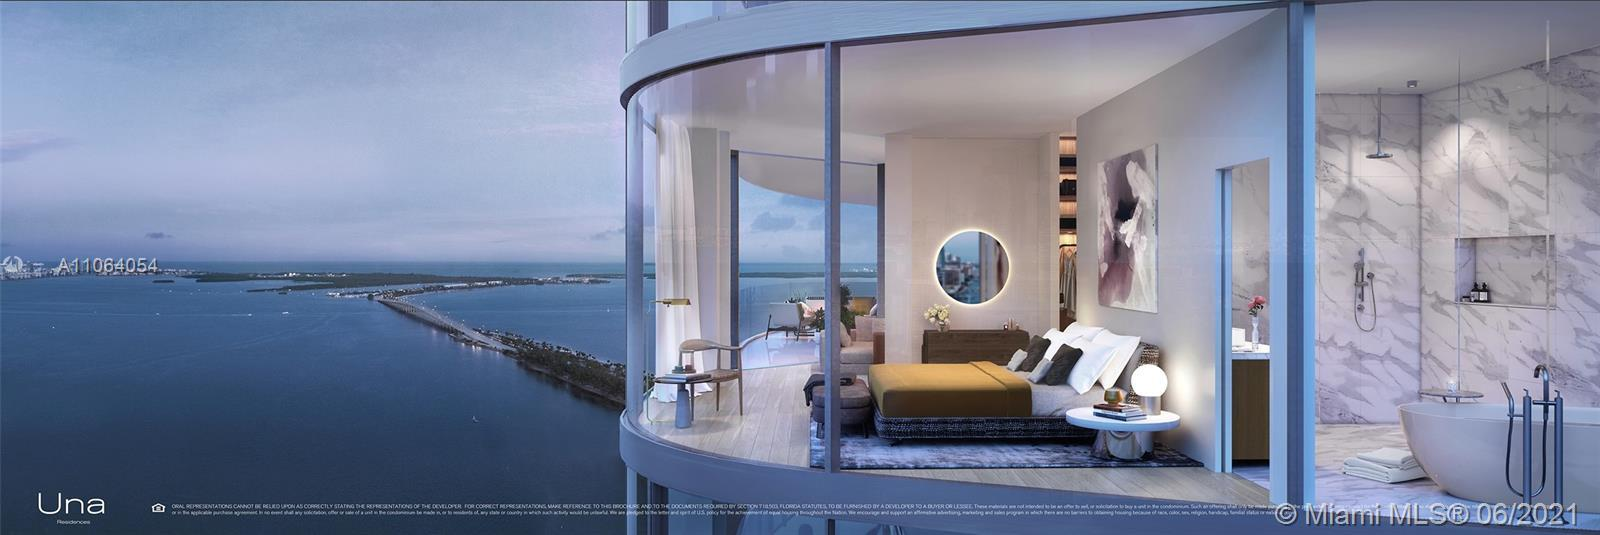 UNA's 135 luxury residences set the standard for Brickell waterfront living with visionary design, i